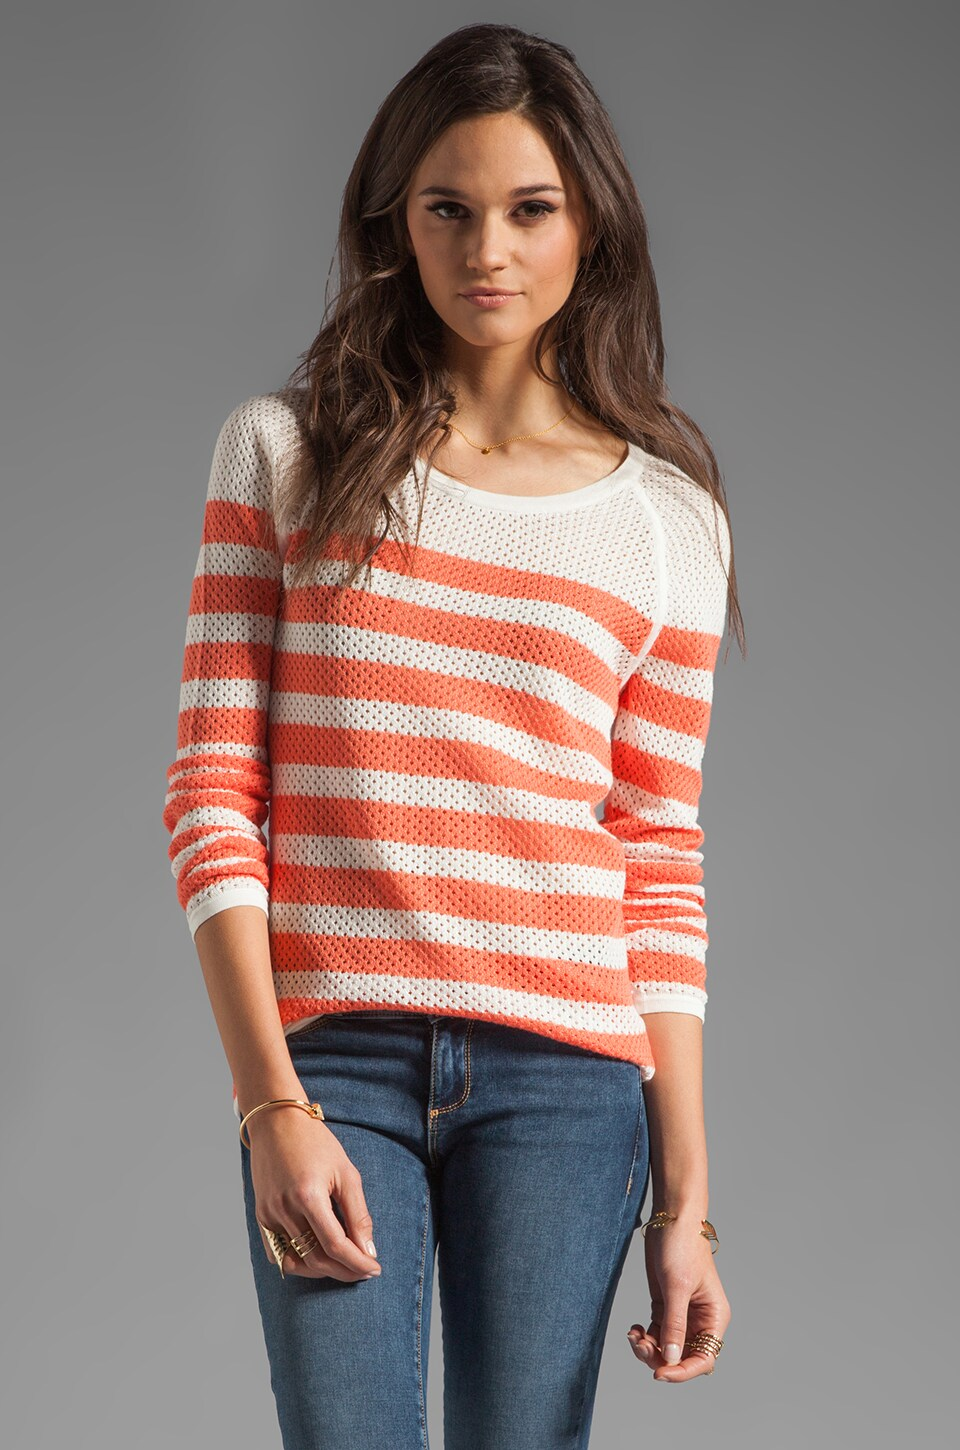 Velvet by Graham & Spencer Mesh Stripe Yurel Sweater in Starfish/Milk